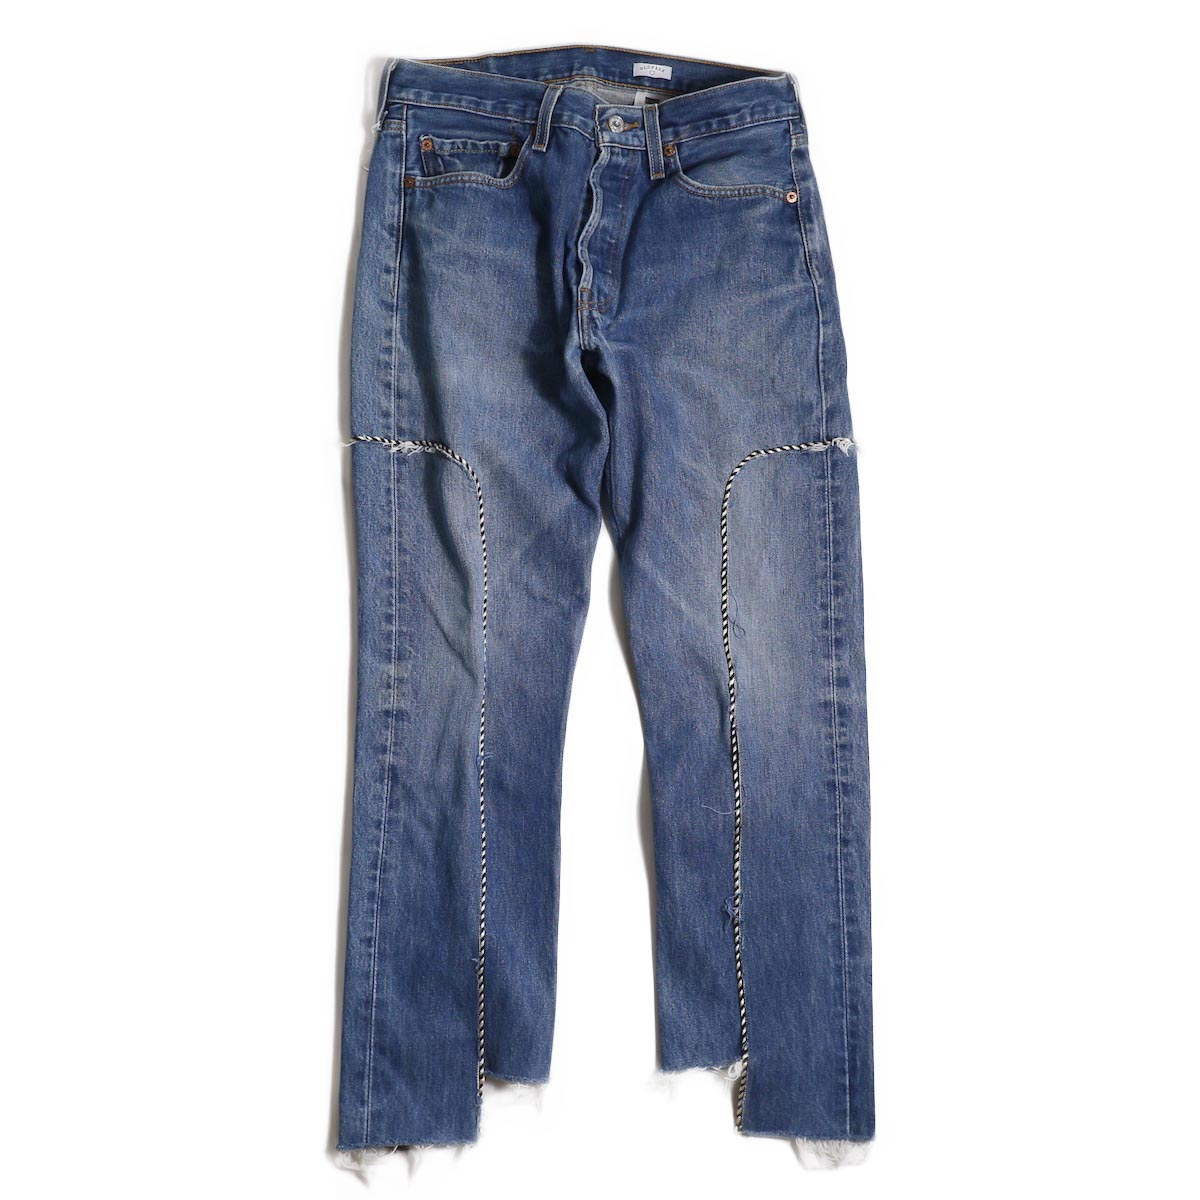 OLD PARK / WESTERN JEANS -INDIGO Msize (A)